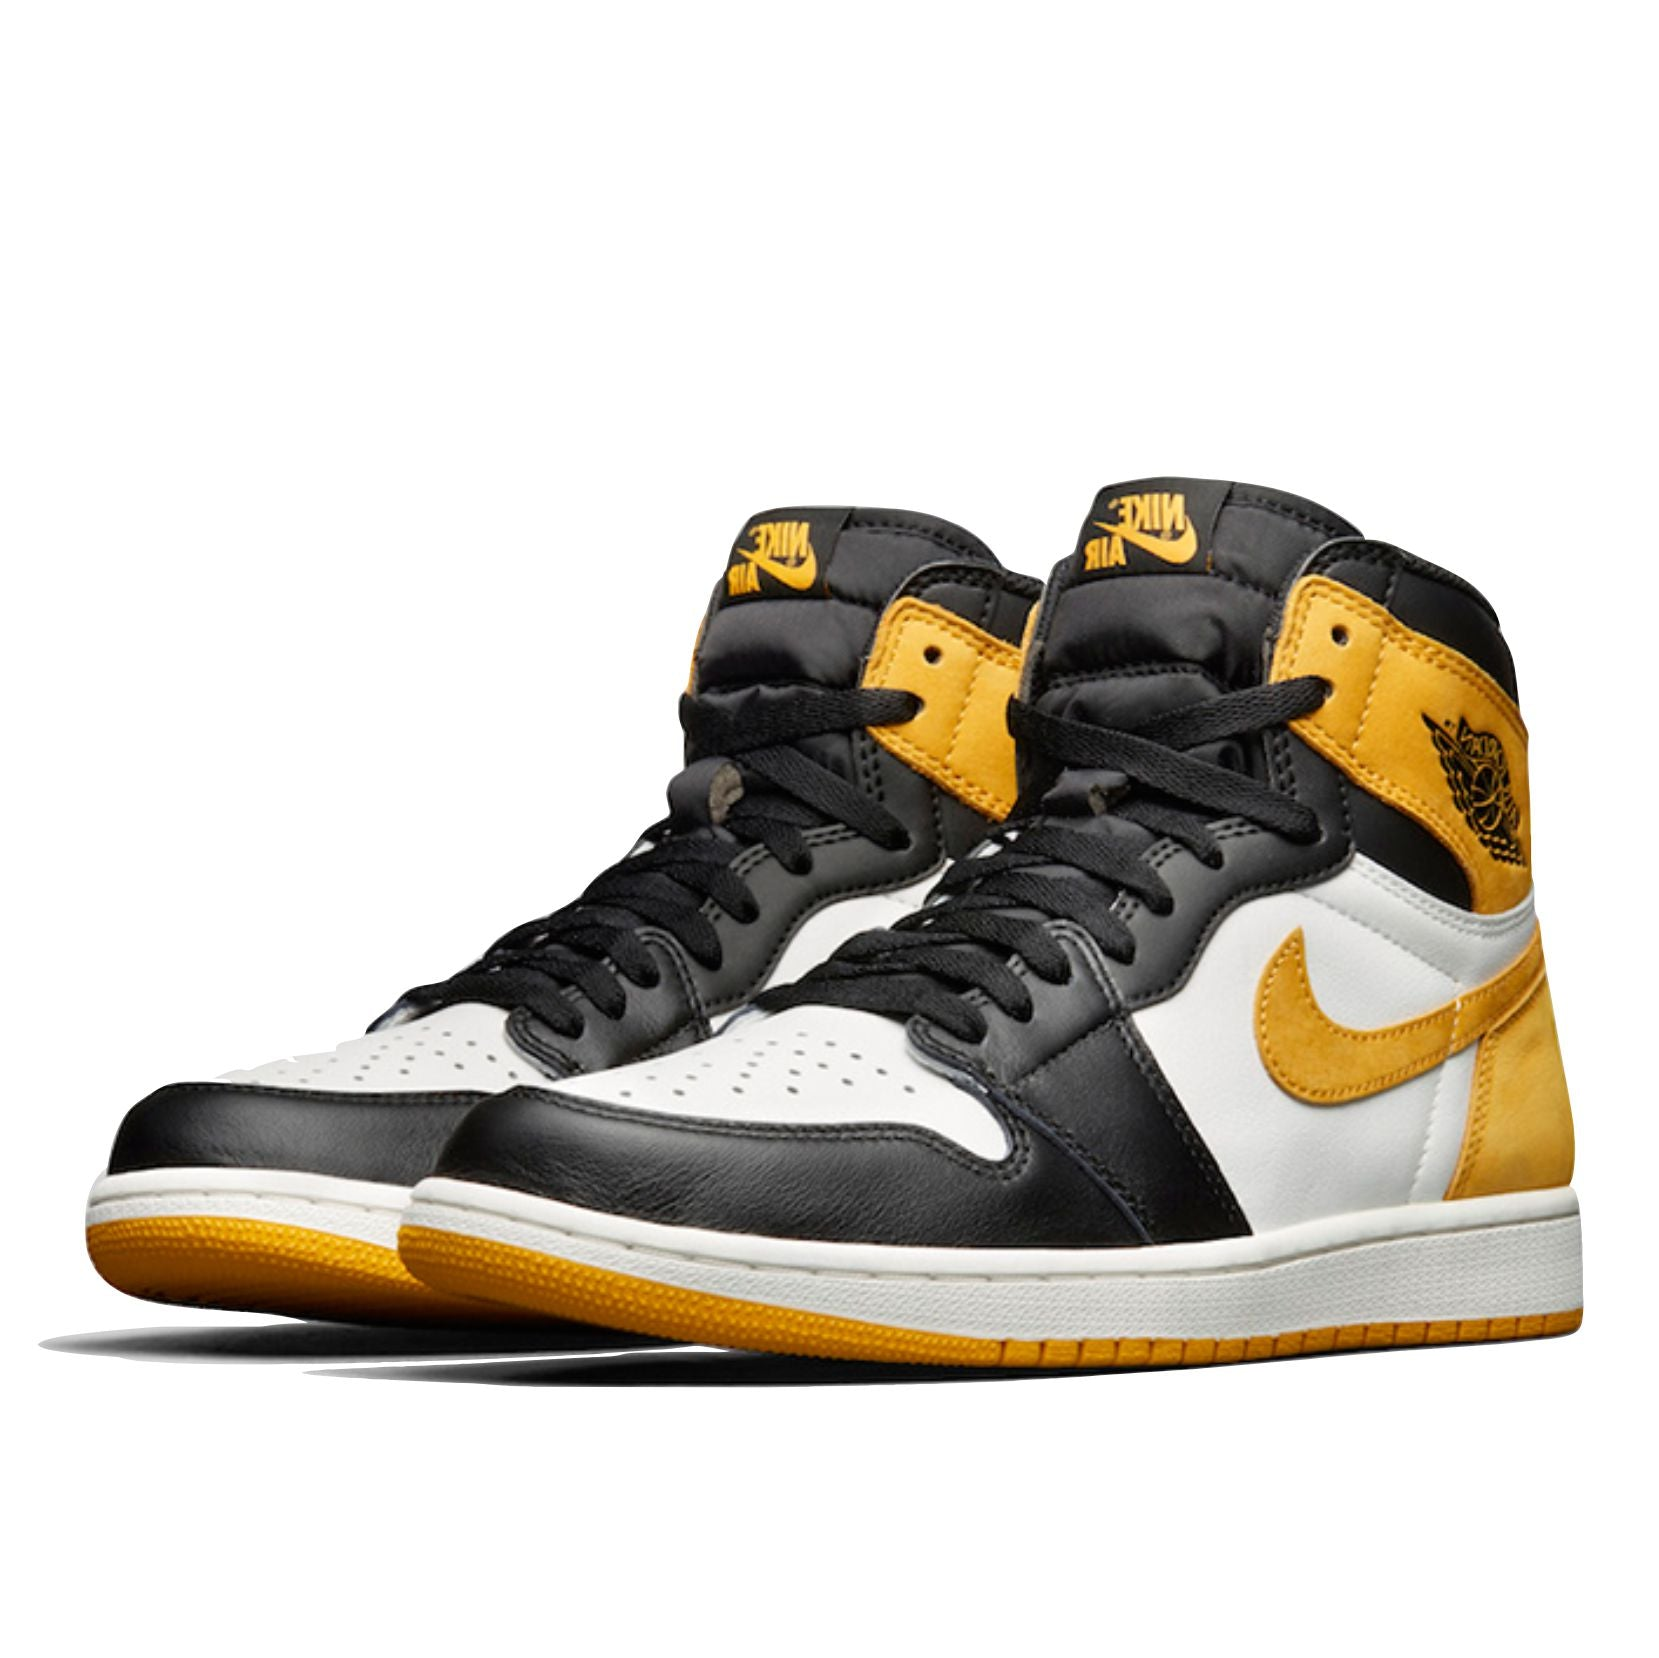 Nike Air Jordan 1 High Yellow Ochre